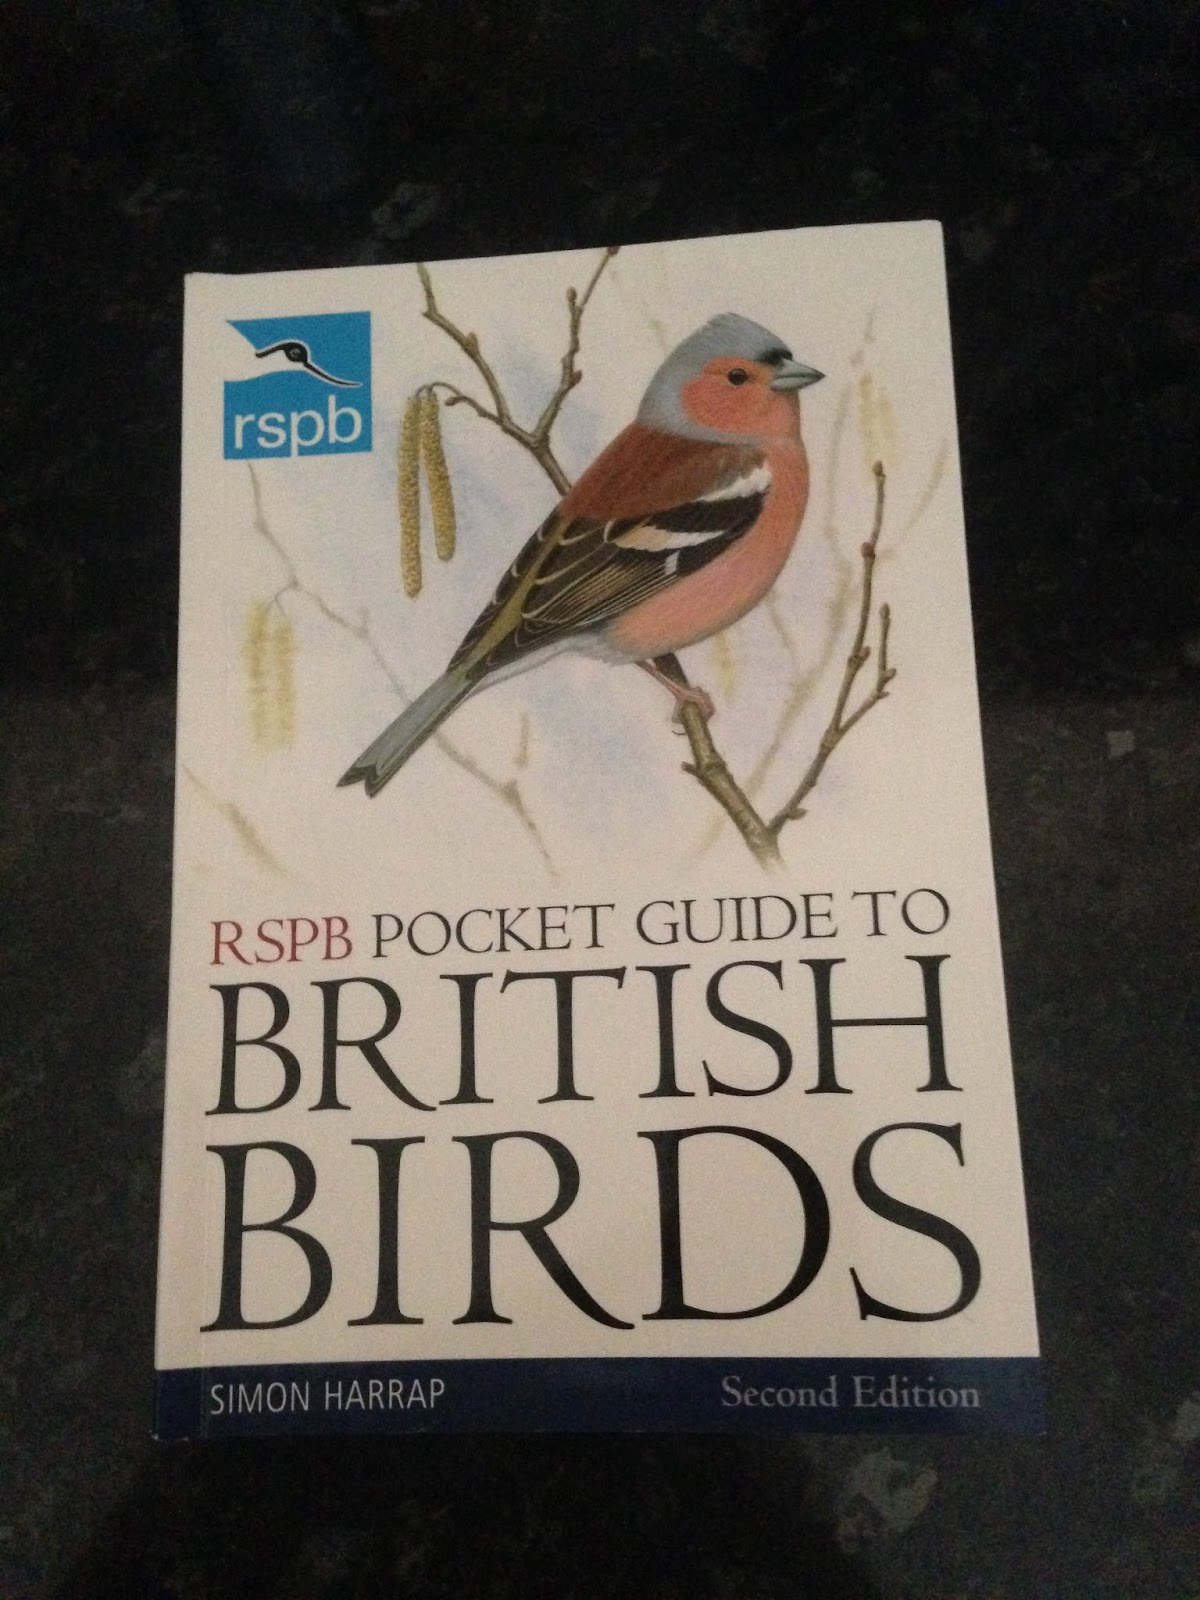 And they were also given the junior birdlife magazine which they will receive quarterly they will get the same one each which saves arguments in future